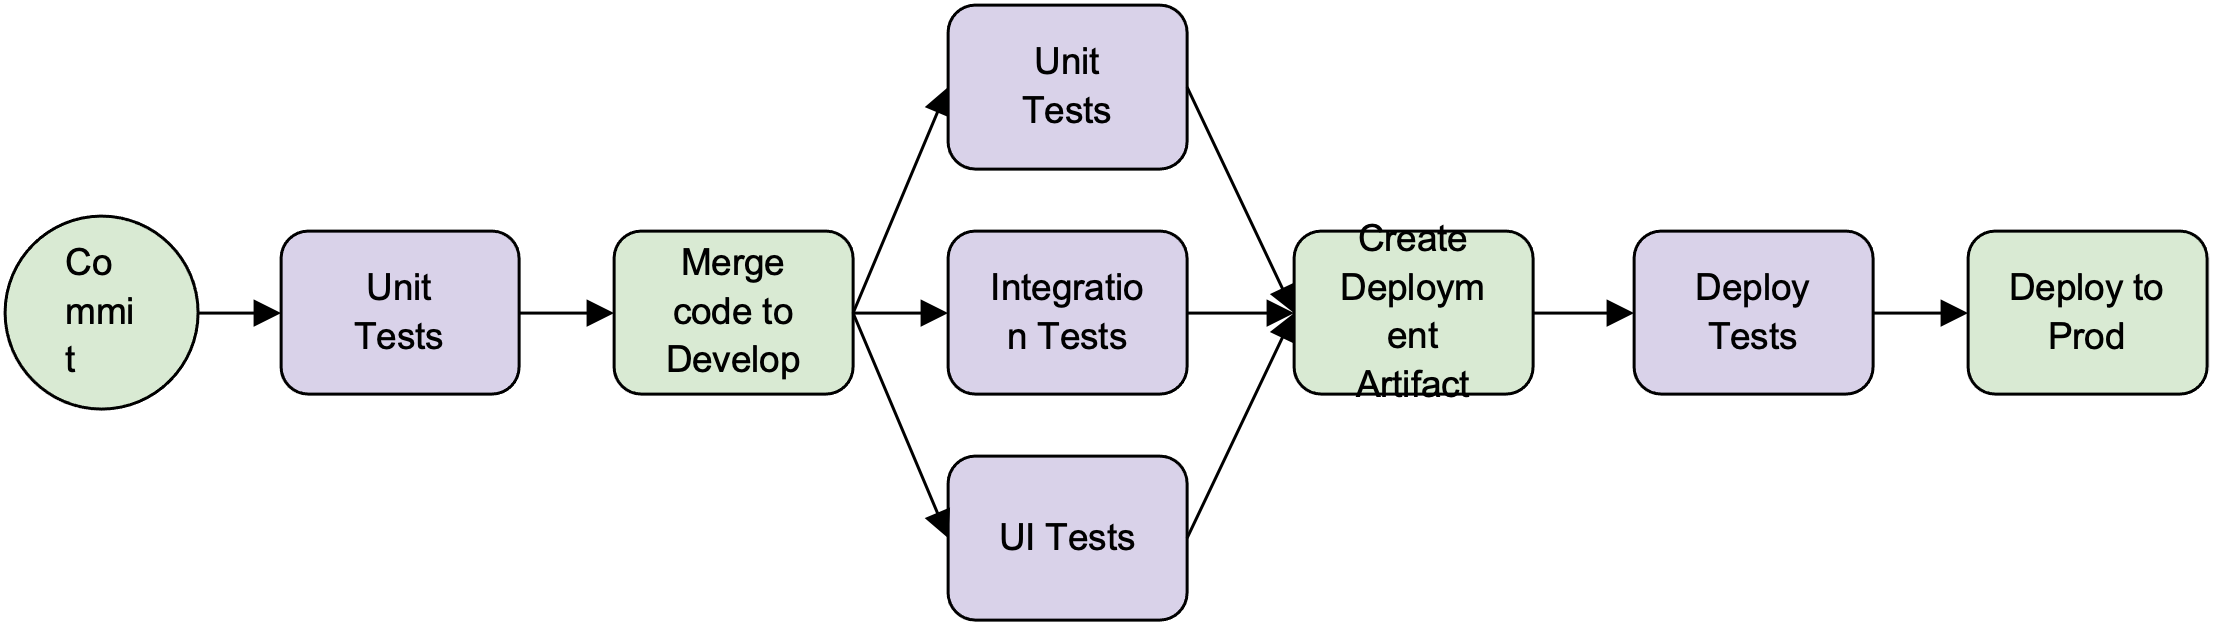 The Whole-Team Approach: Optimizing the CI/CD Workflow - Image 2